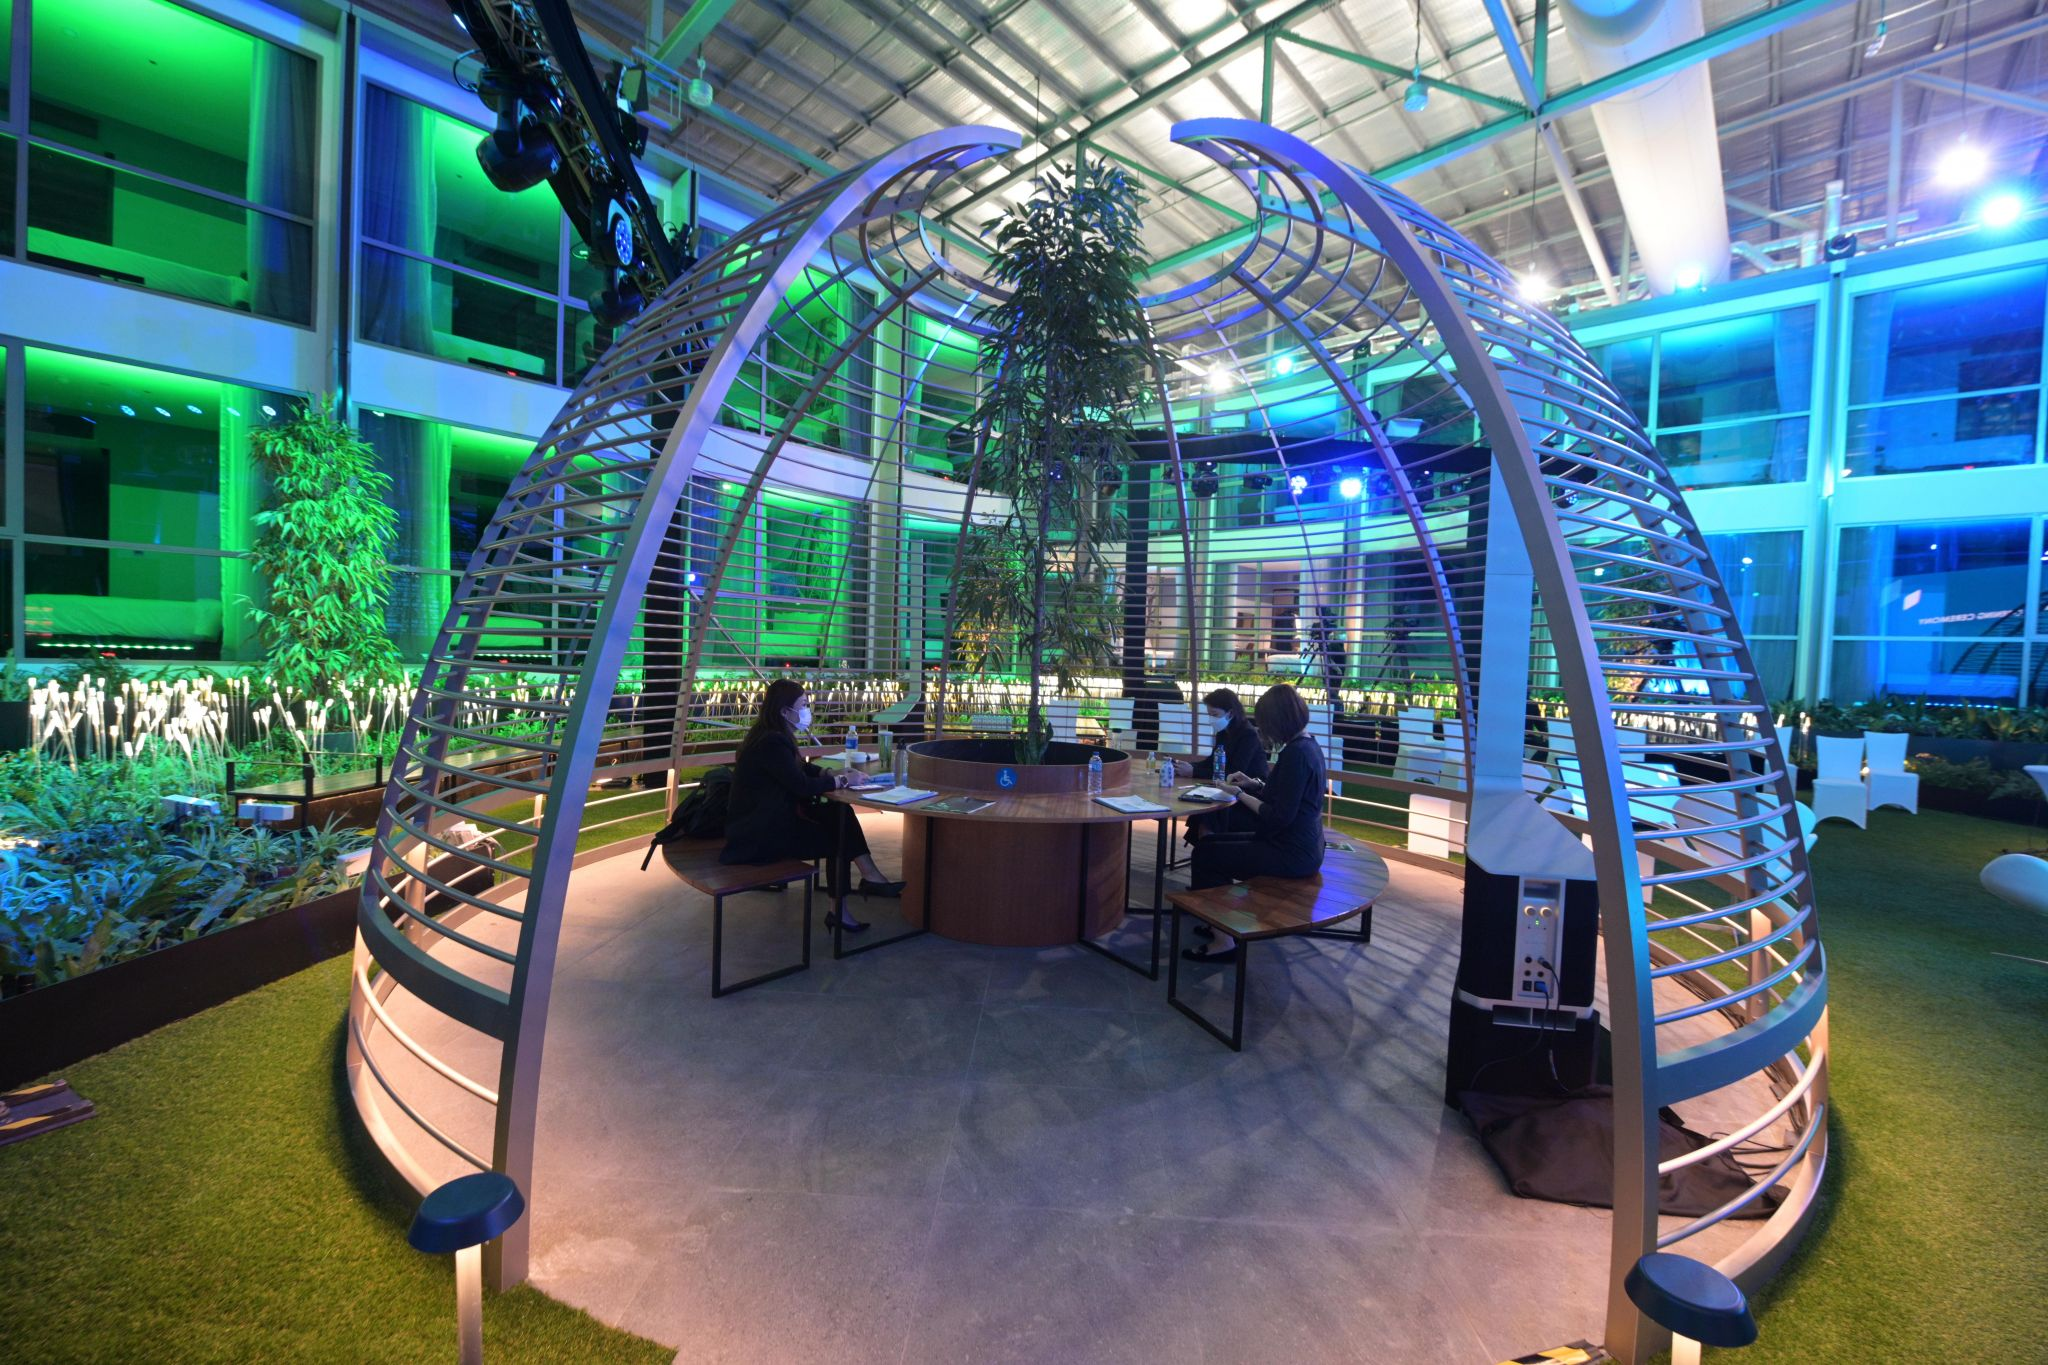 Singapore builds world's first COVID-safe 'bubble' hotel